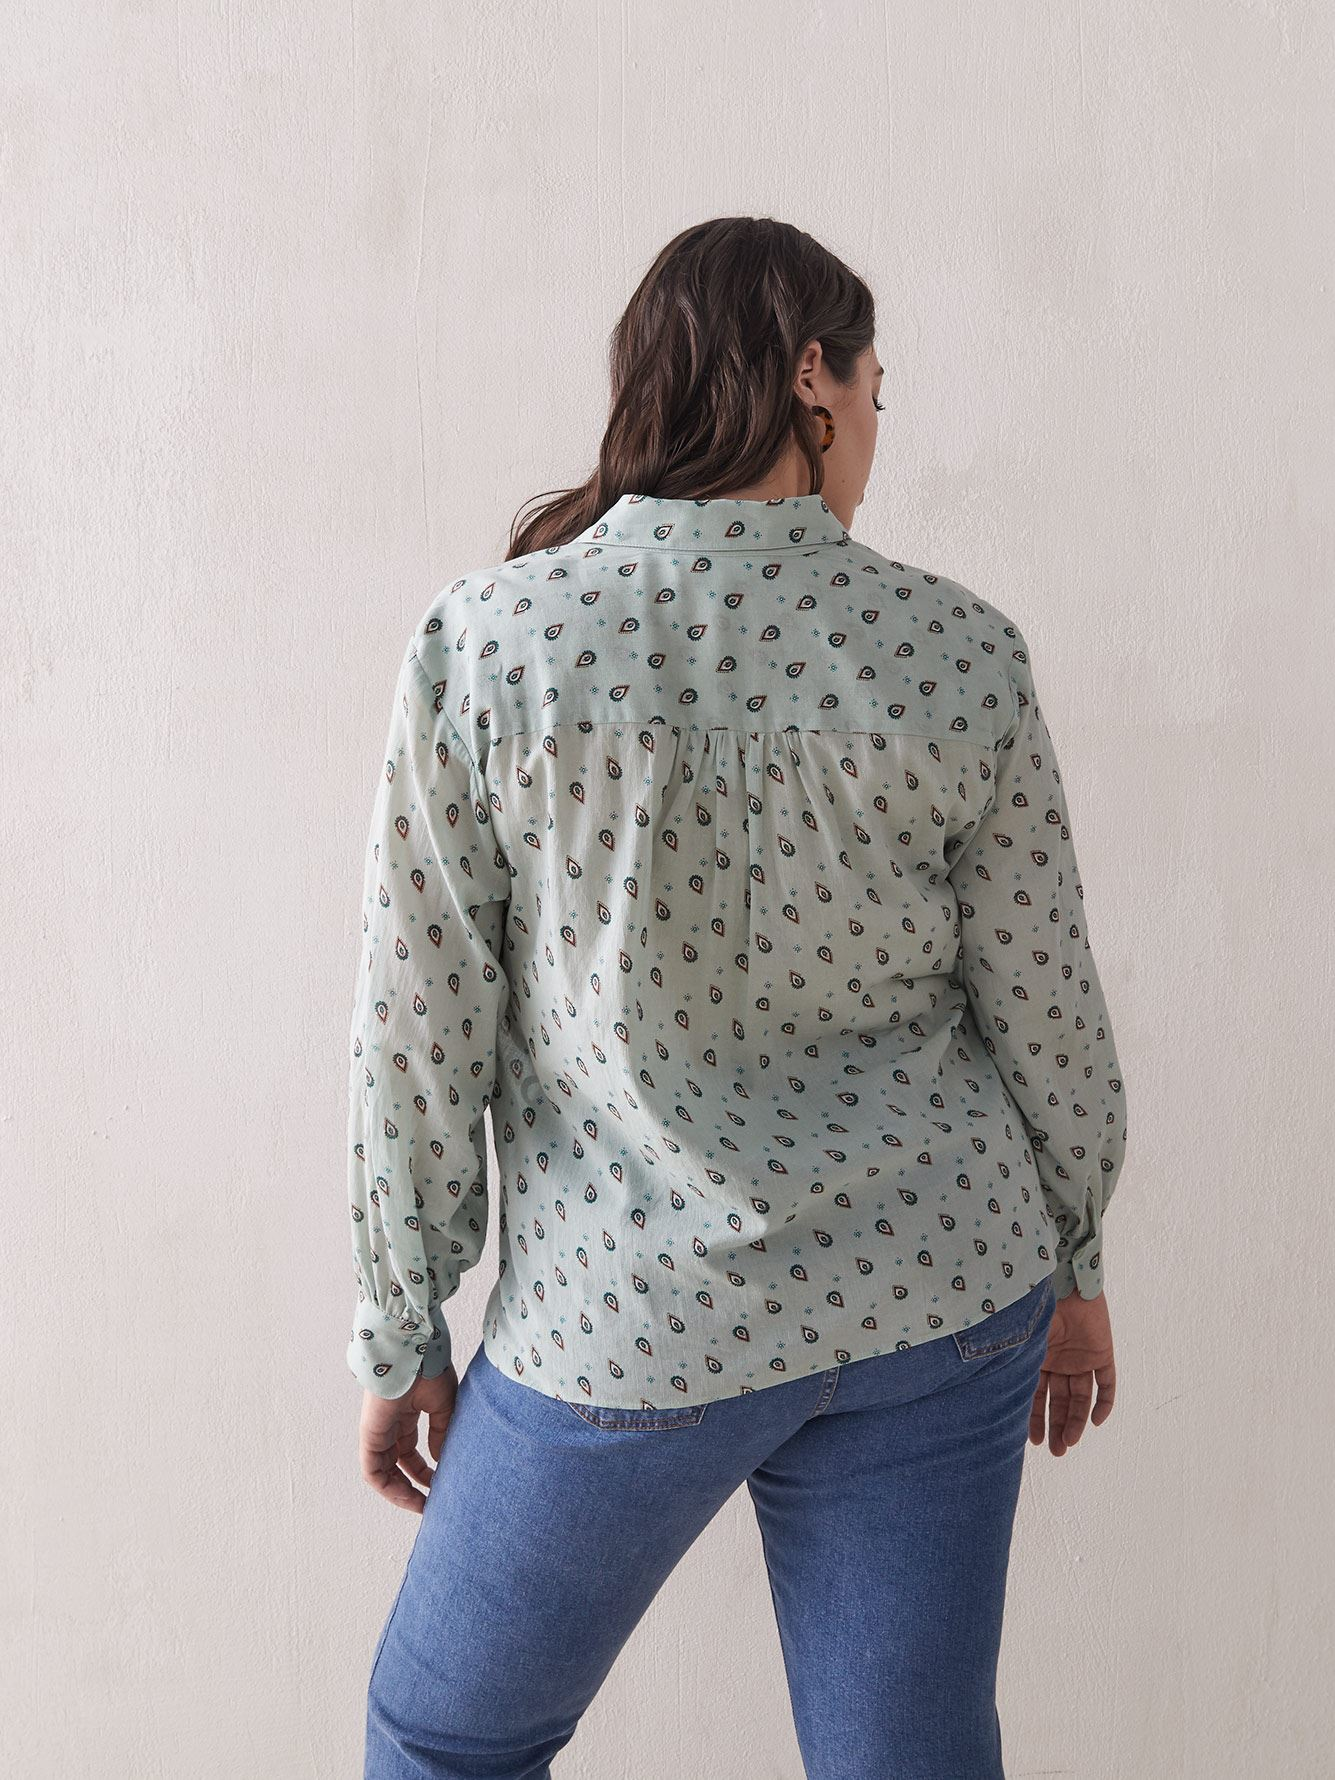 Georgette Blouse in Soft Mint - Addition Elle